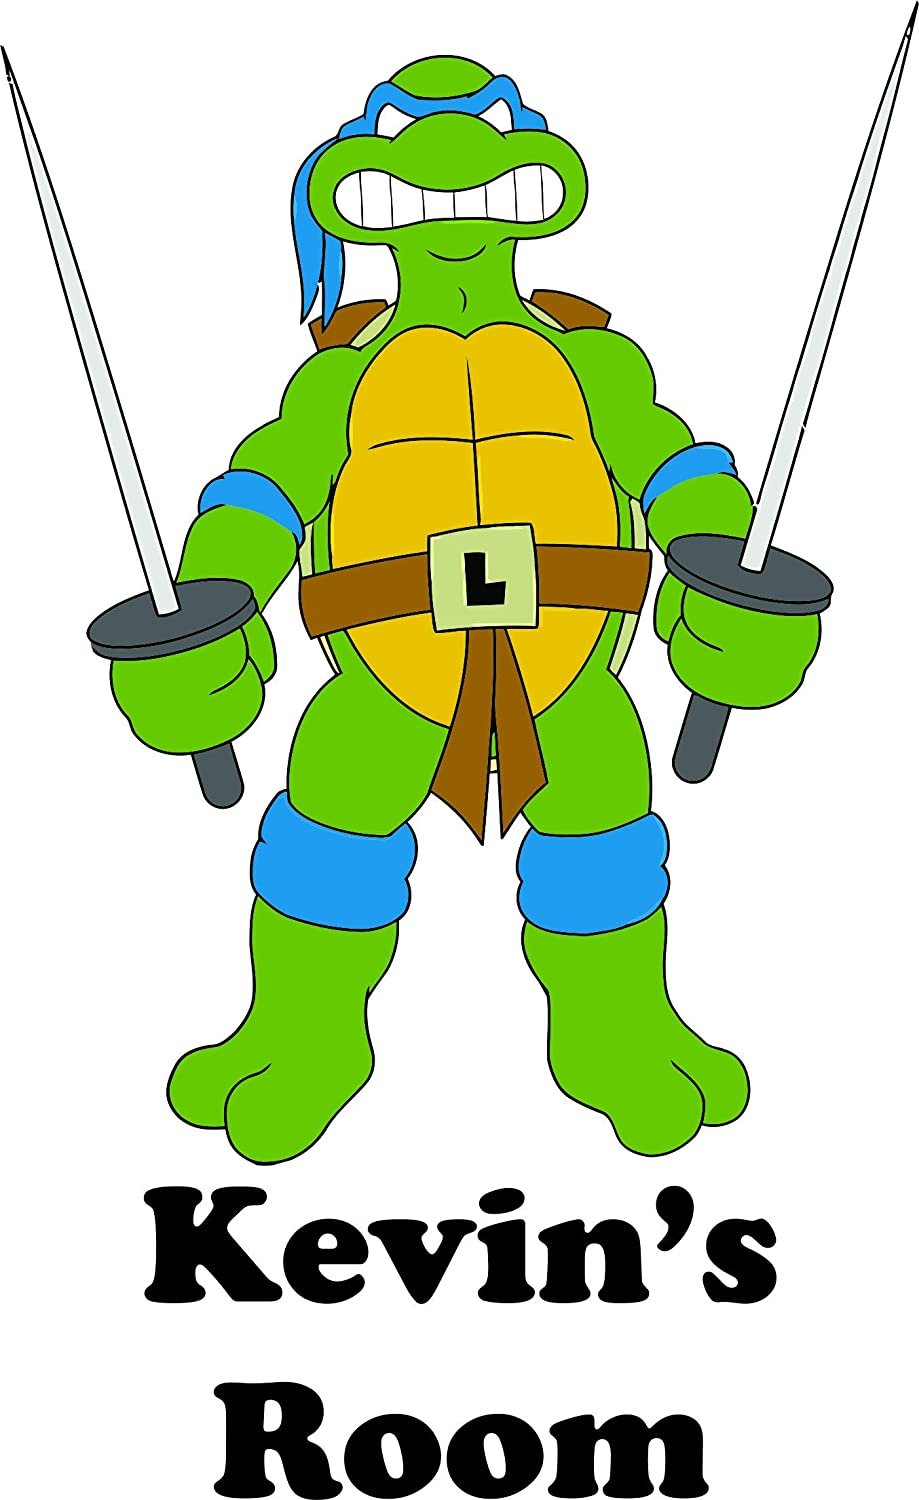 Amazon.com: Personalized Names Custom Name Ninja Turtles ...